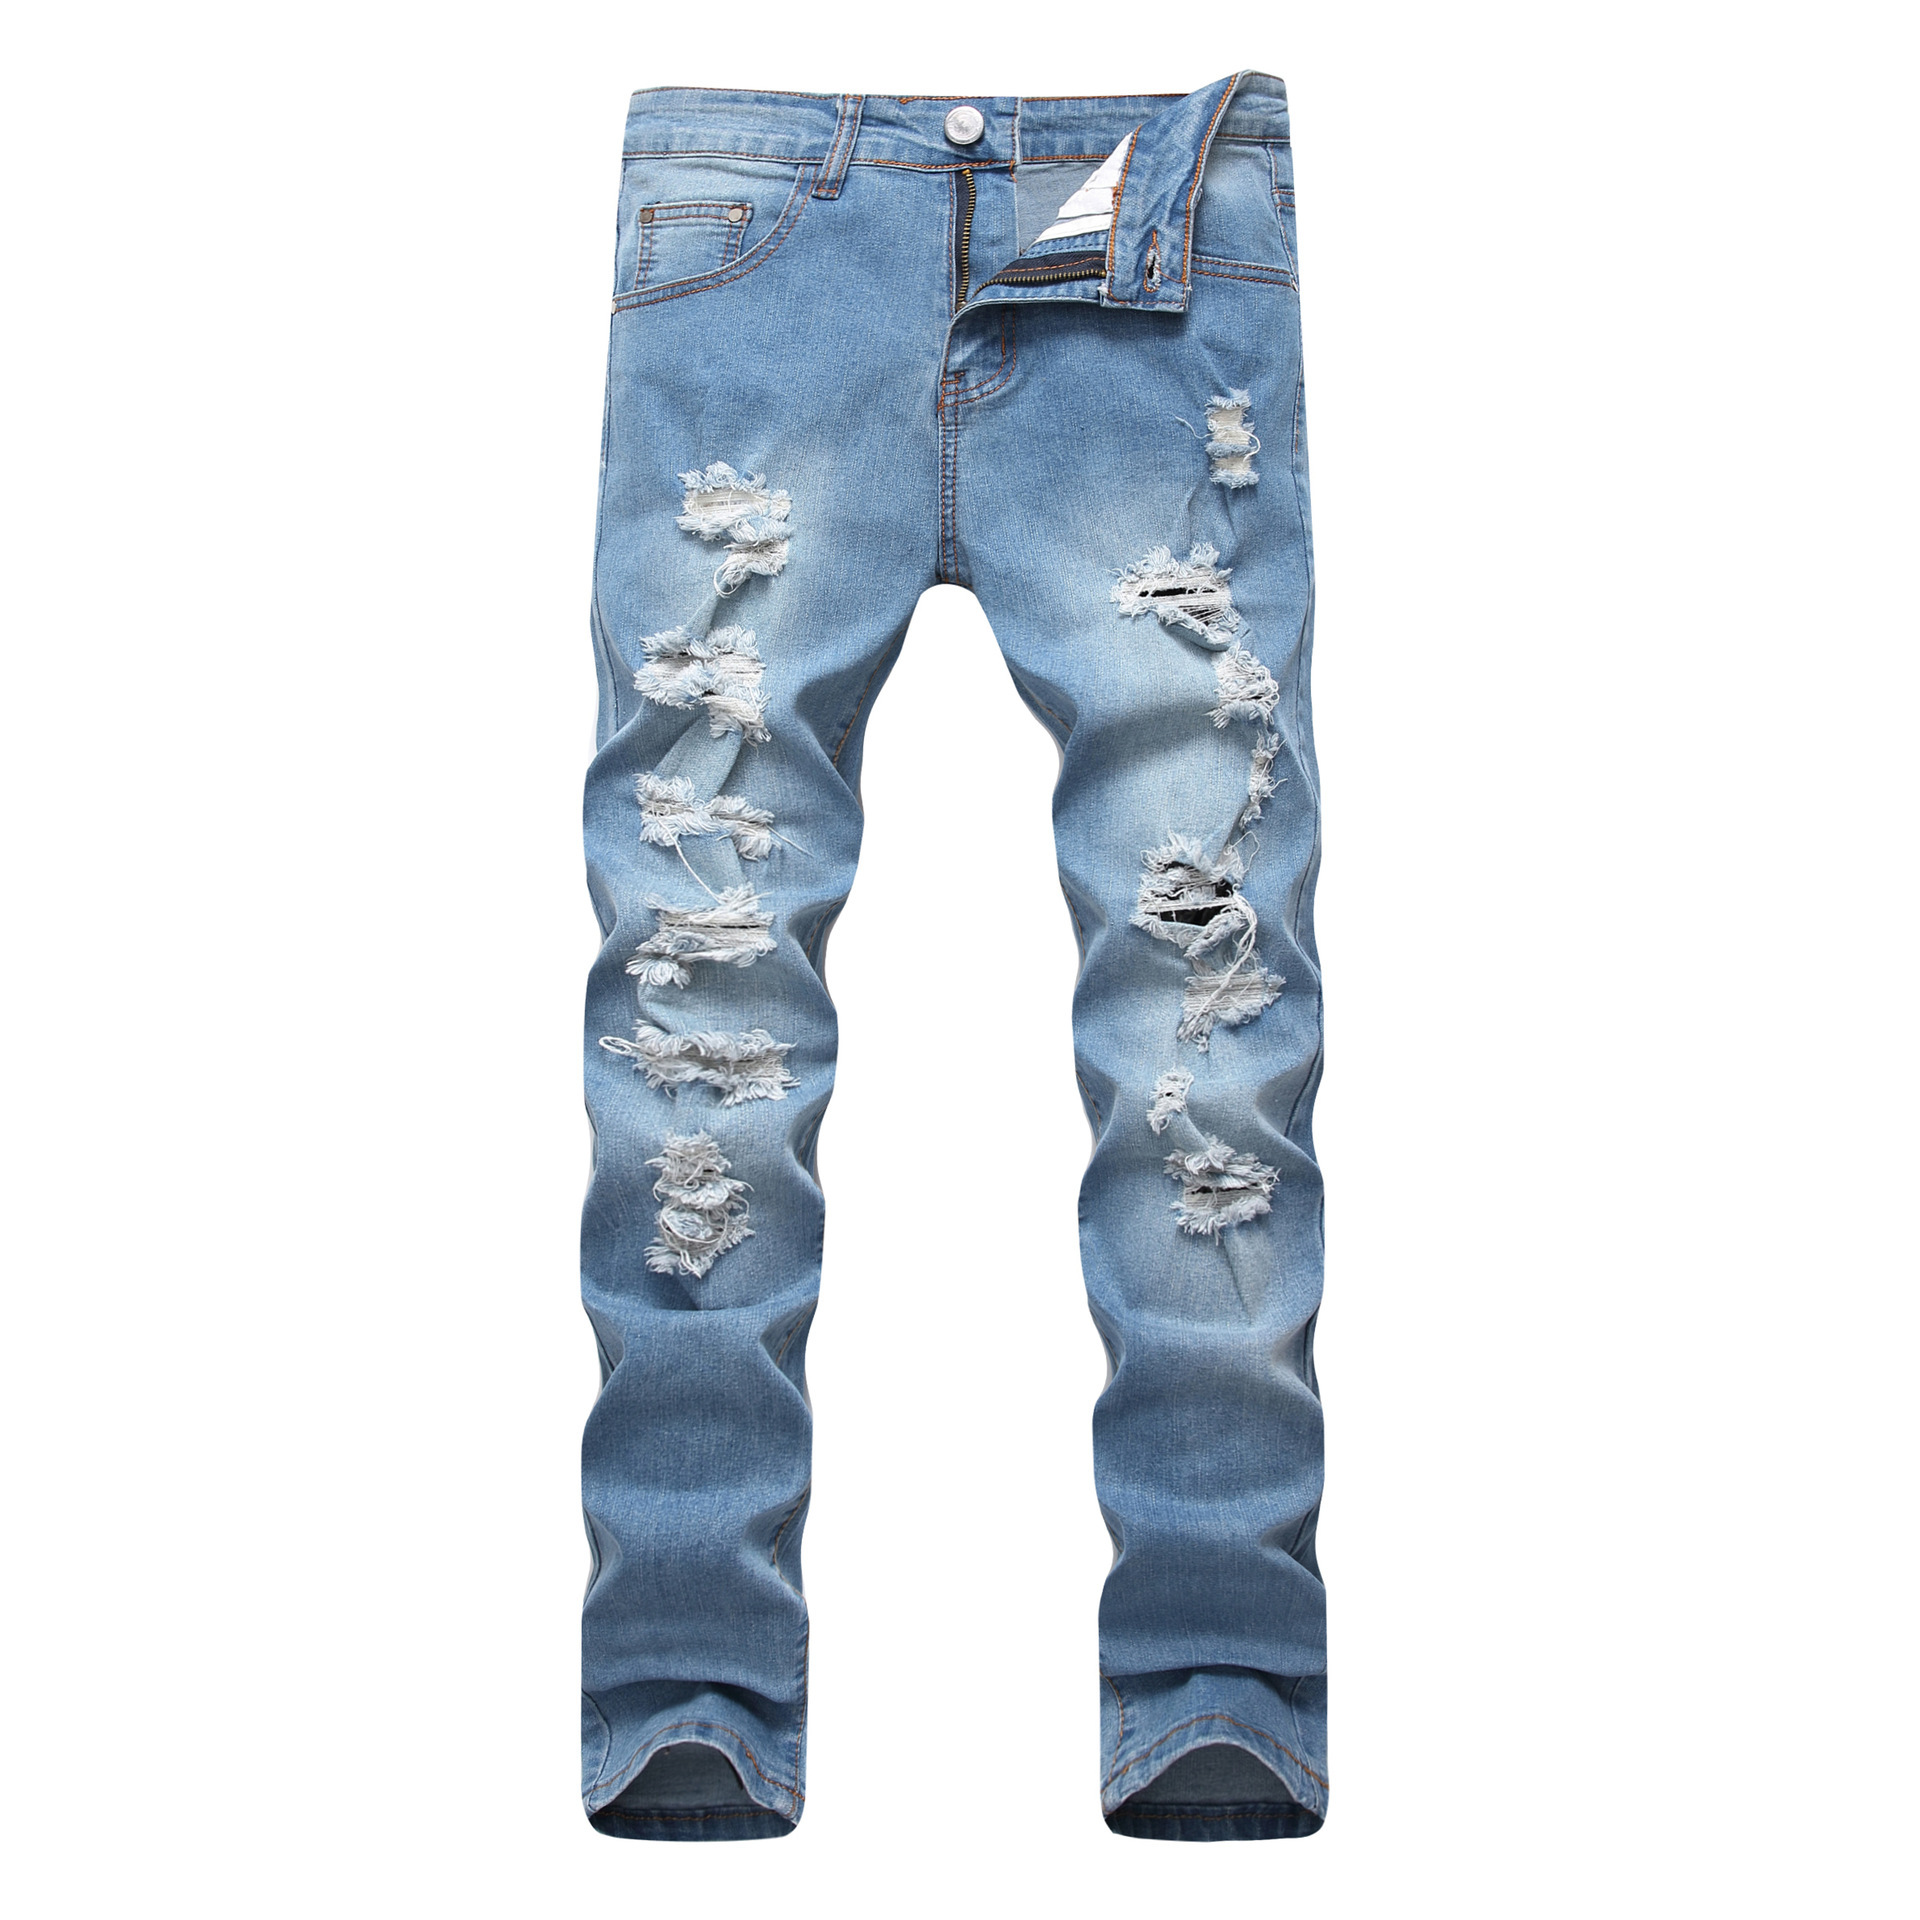 2019 New Style Europe And America MEN'S Jeans Light Blue Men With Holes Elasticity Jeans Slim Fit Pencil Pants Trousers